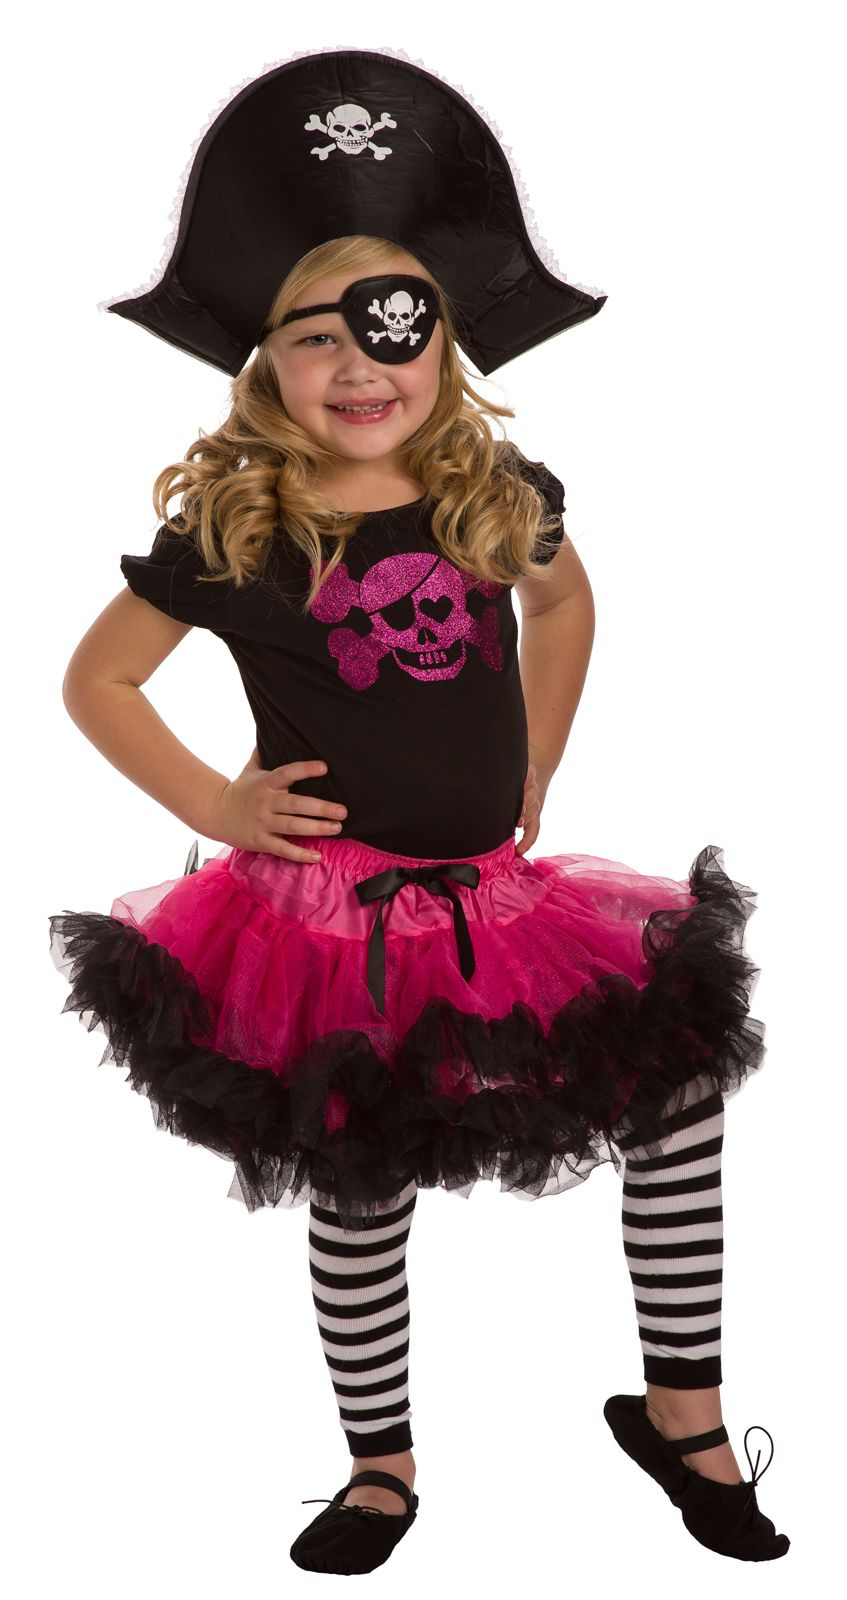 Girl's Pirate Tutu Ensemble-Ay Matey! Thar be a Perty Pirate Tutu Ensemble for school, play, dance or dress up! #pirates #DressUp #pretend www.littledressupshop.com #diypiratecostumeforkids